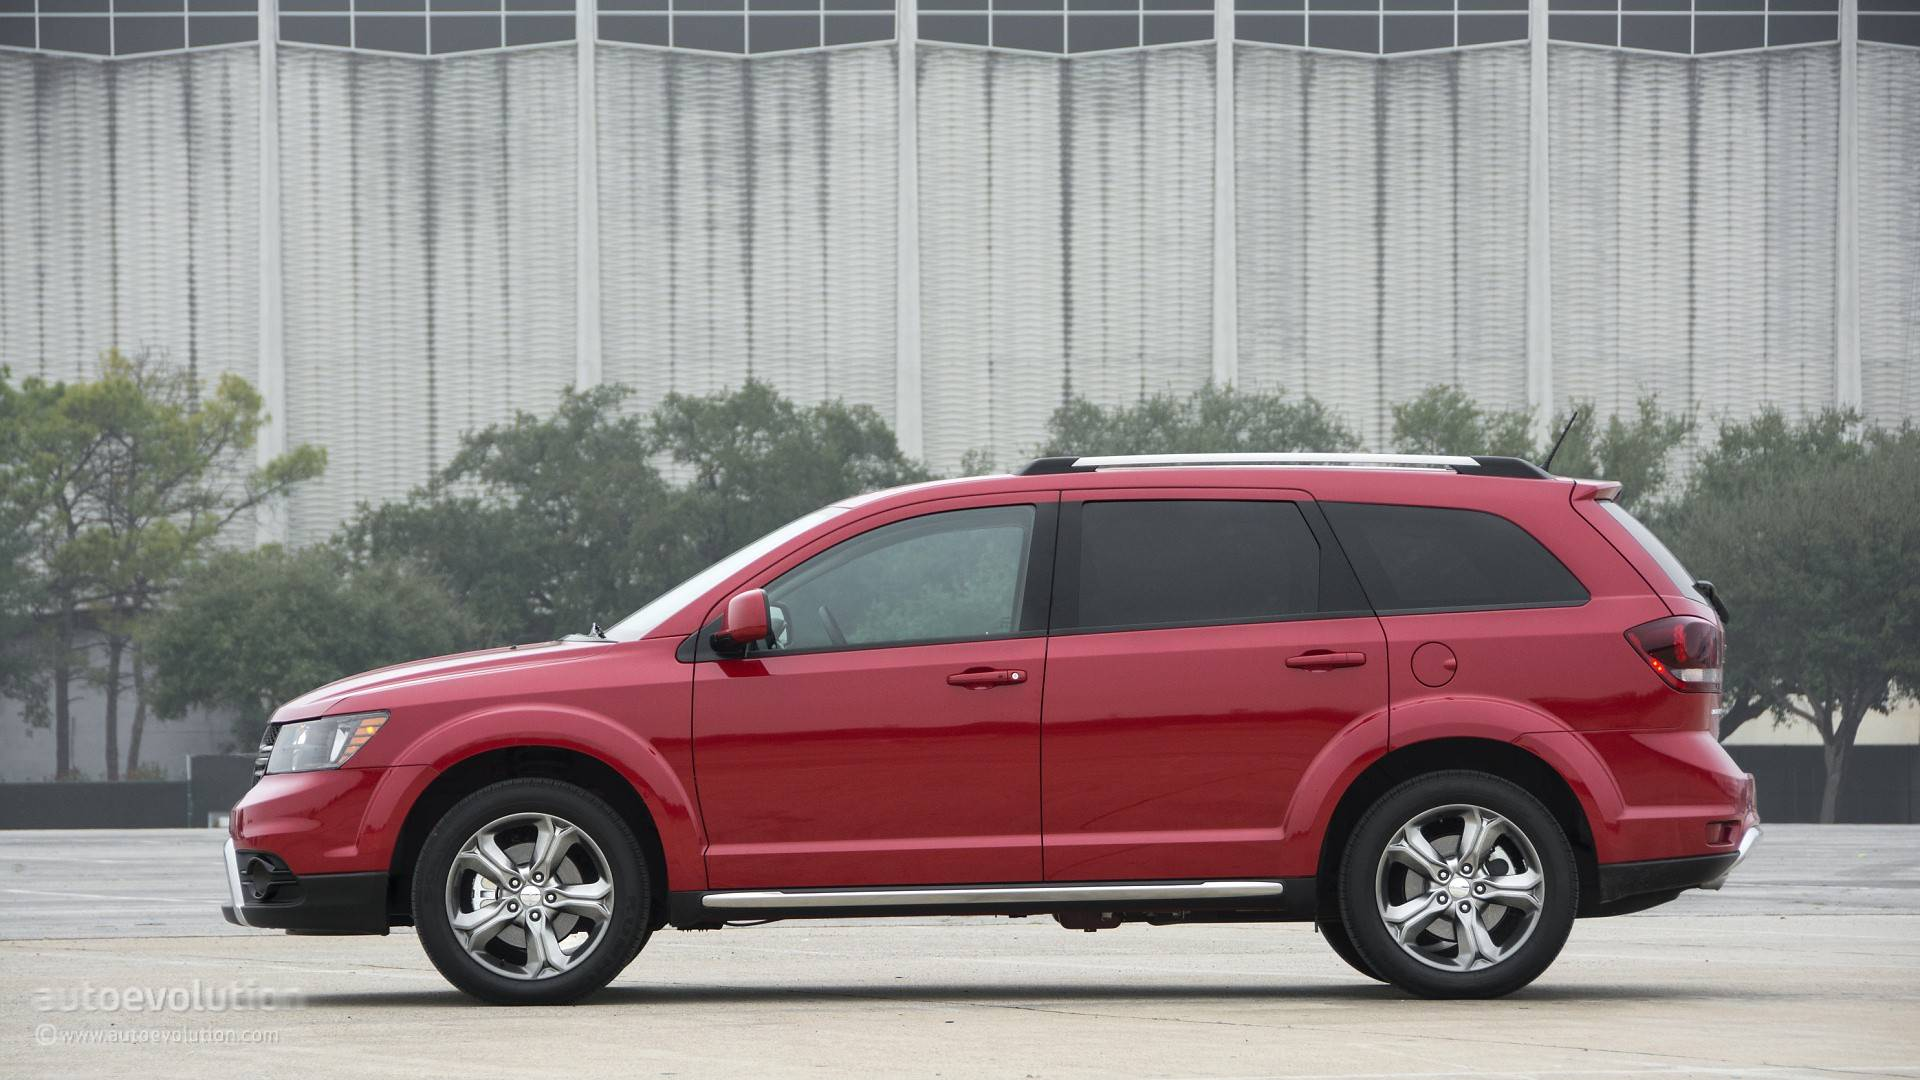 2015 dodge journey se 4dr suv 3 6l v6 awd auto. Black Bedroom Furniture Sets. Home Design Ideas